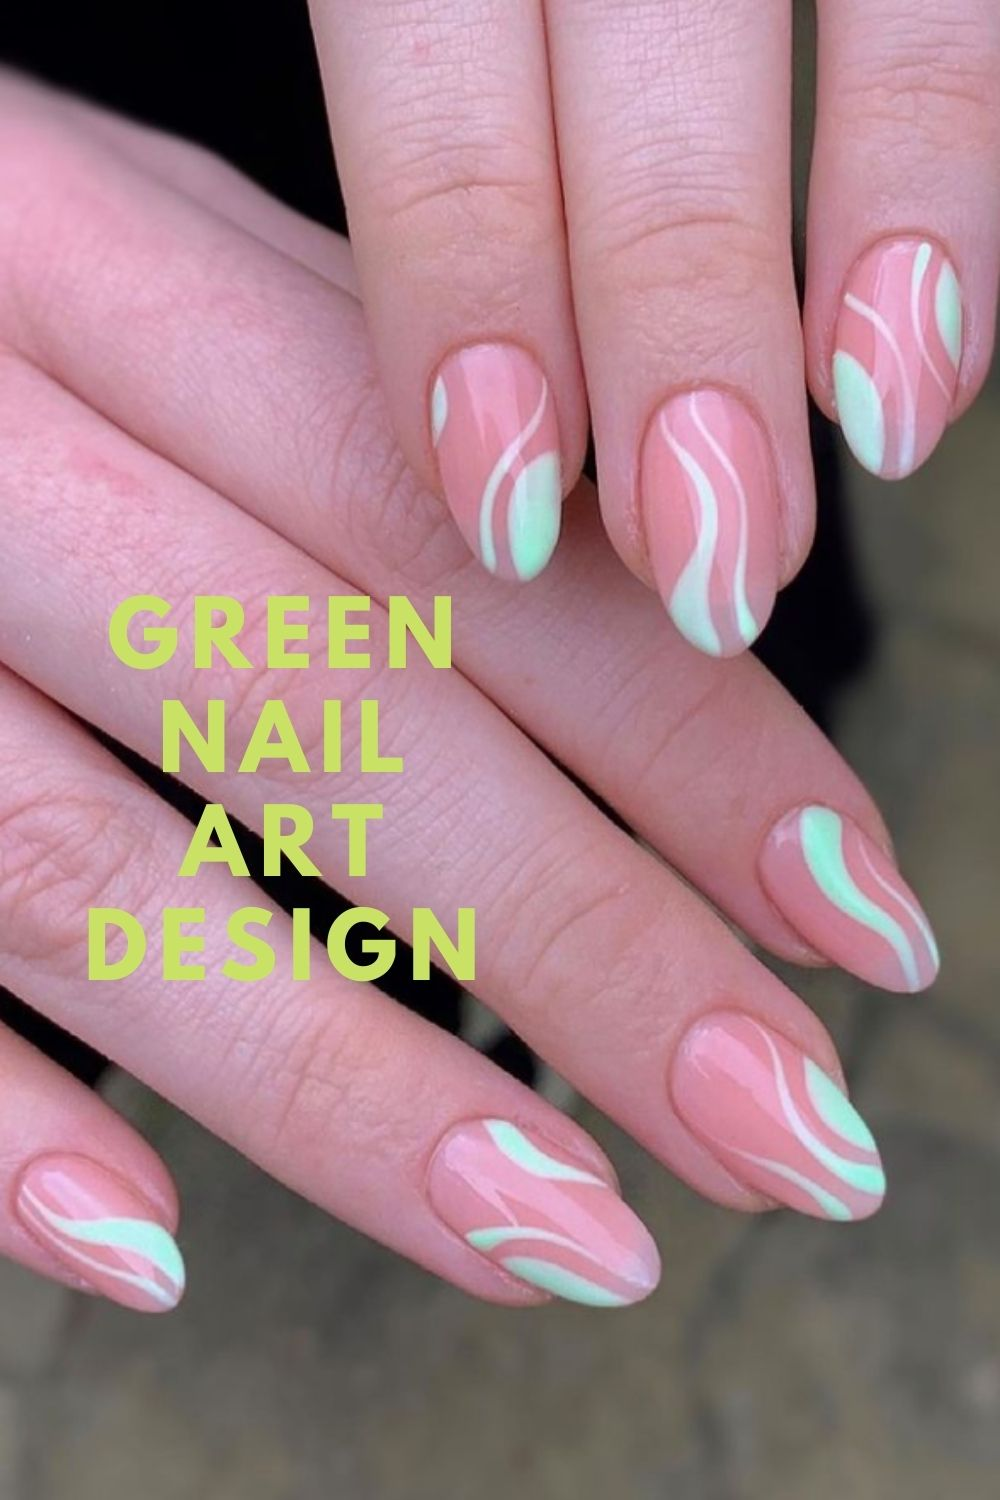 Pink and neon green nails art